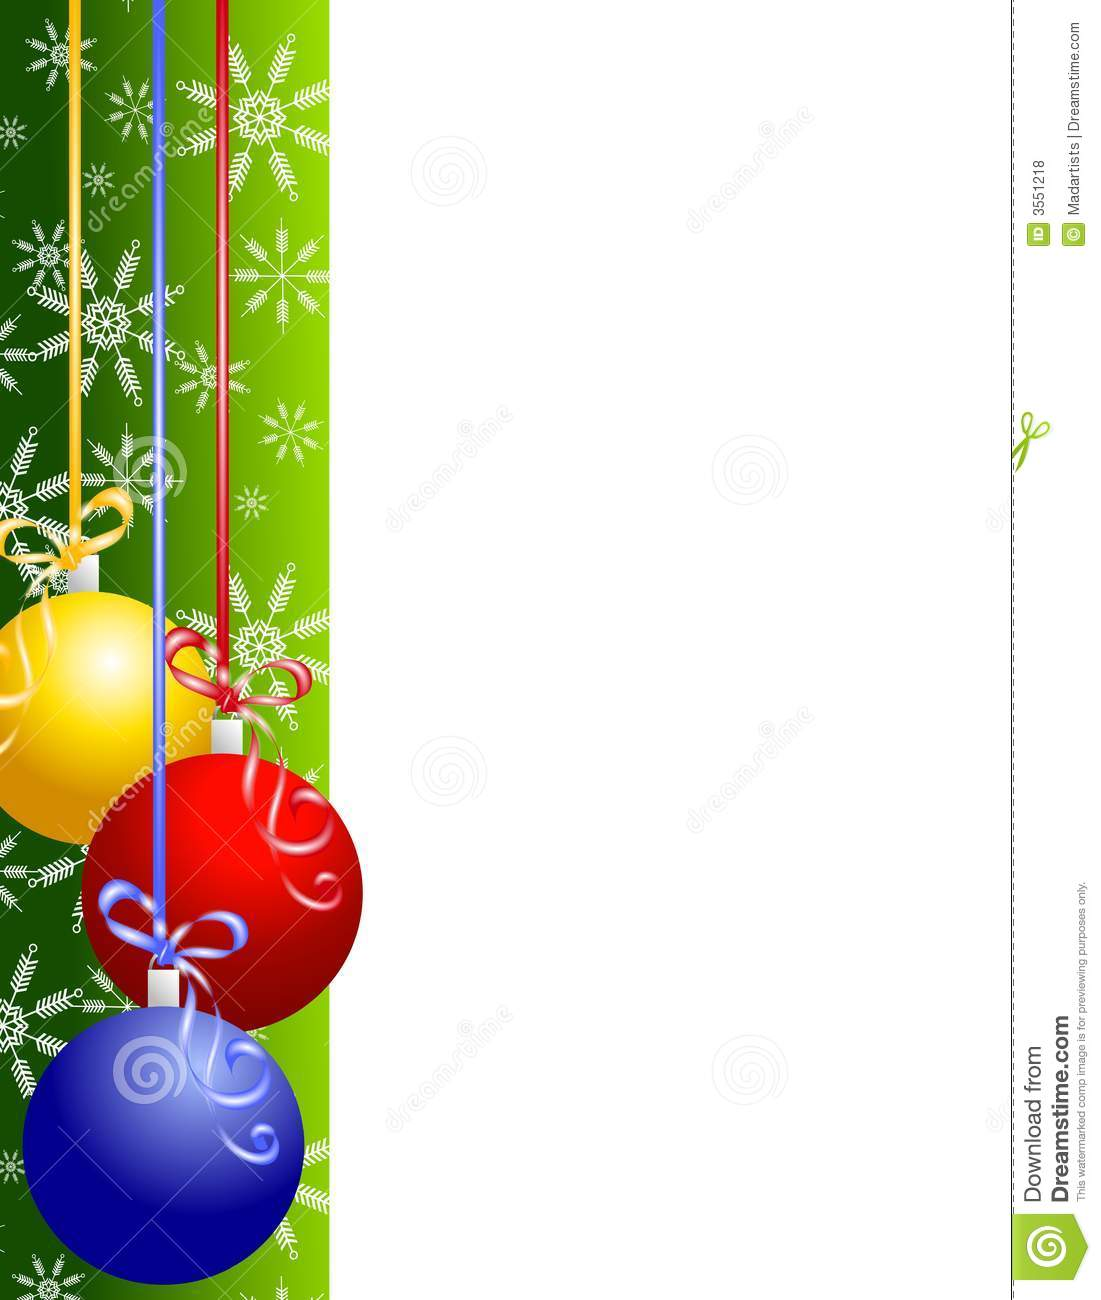 Free Clipart Christmas Holiday.